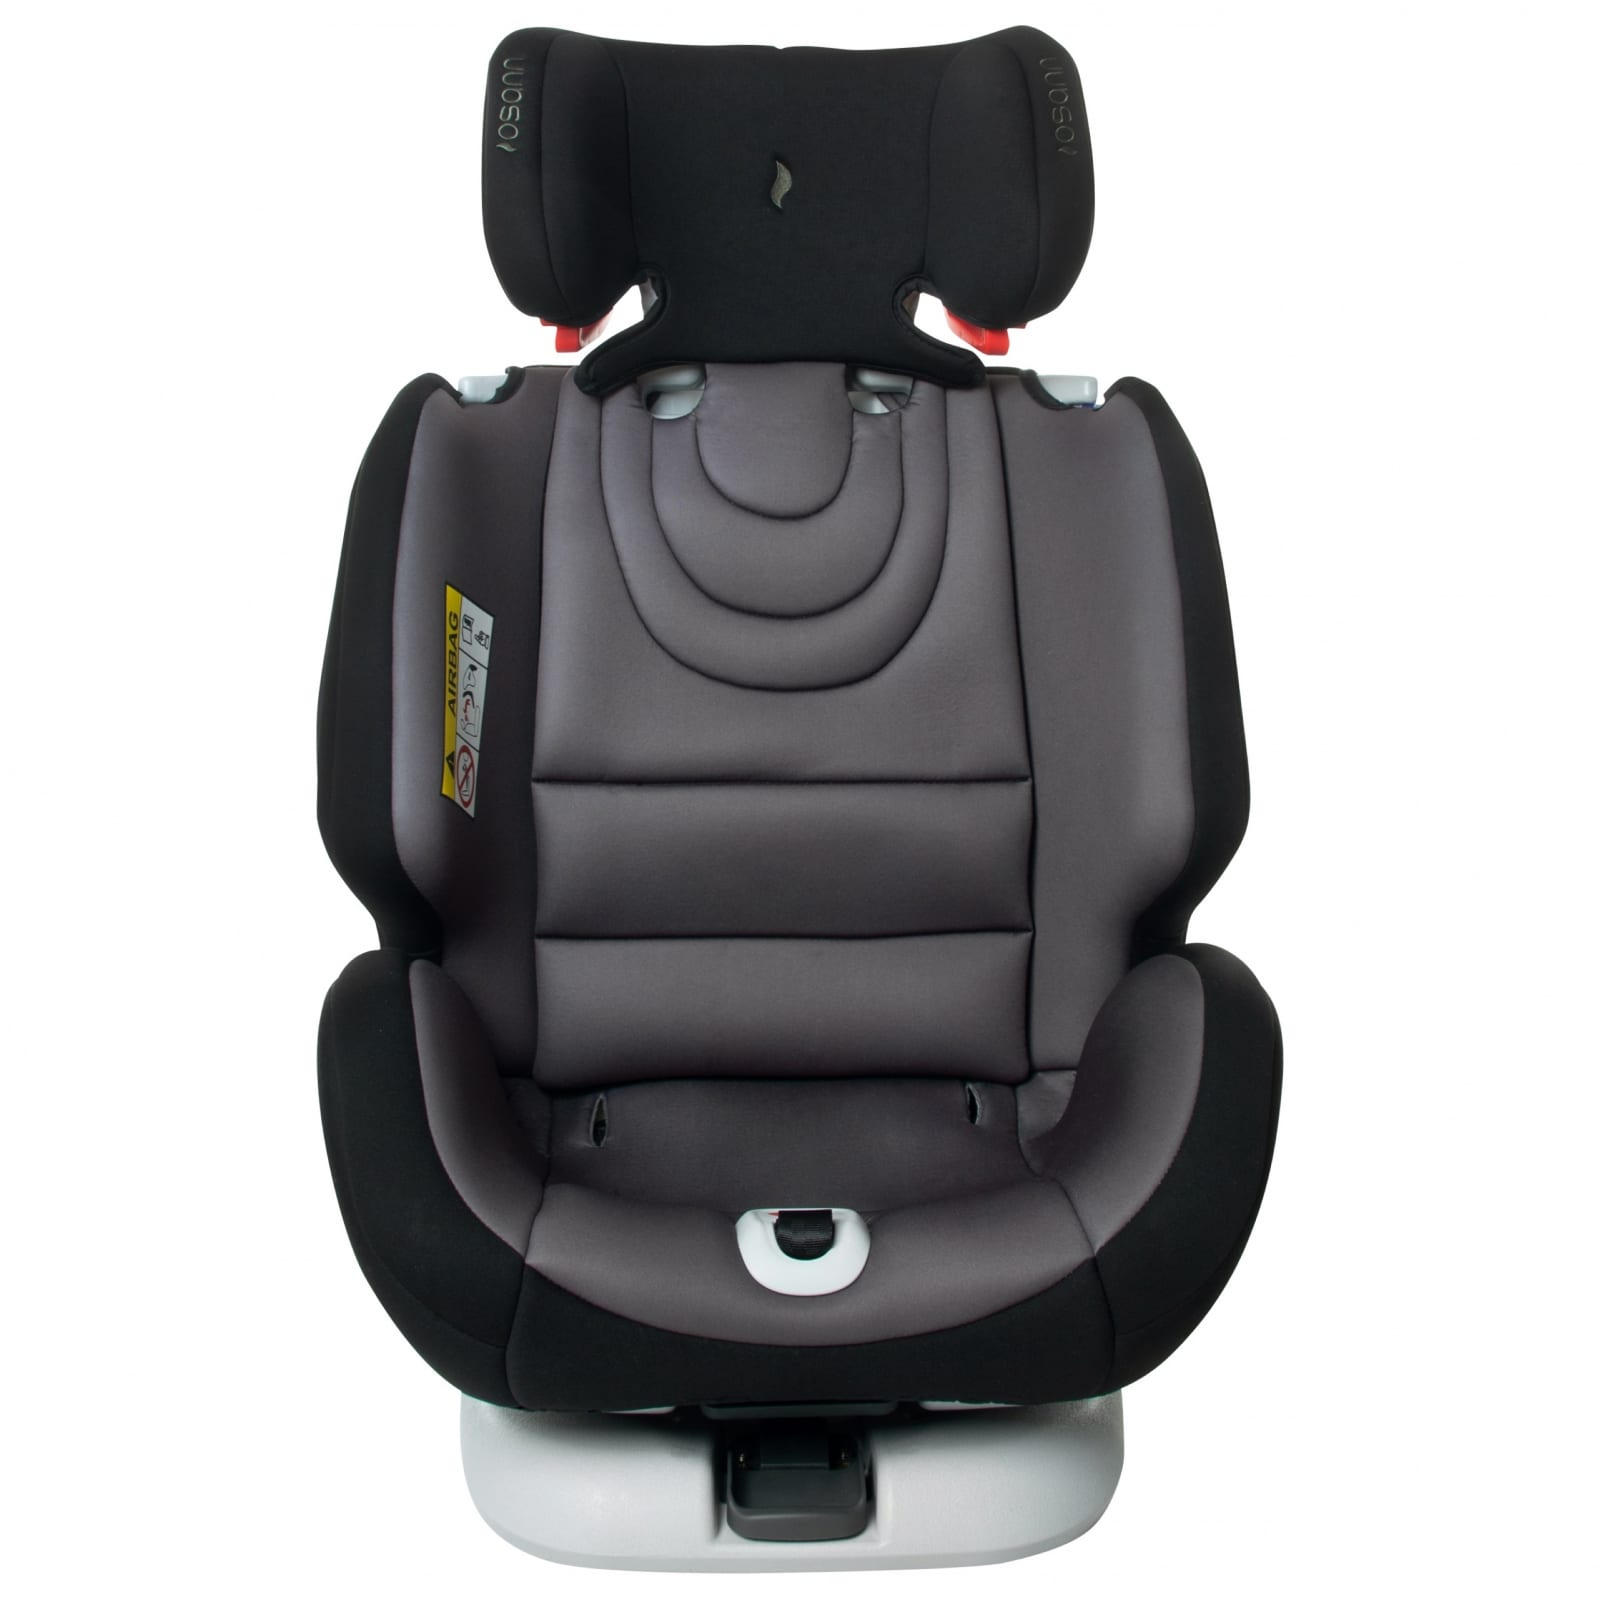 Osann One 360 Car Seat – Black Group 0+/1/2/3 product image